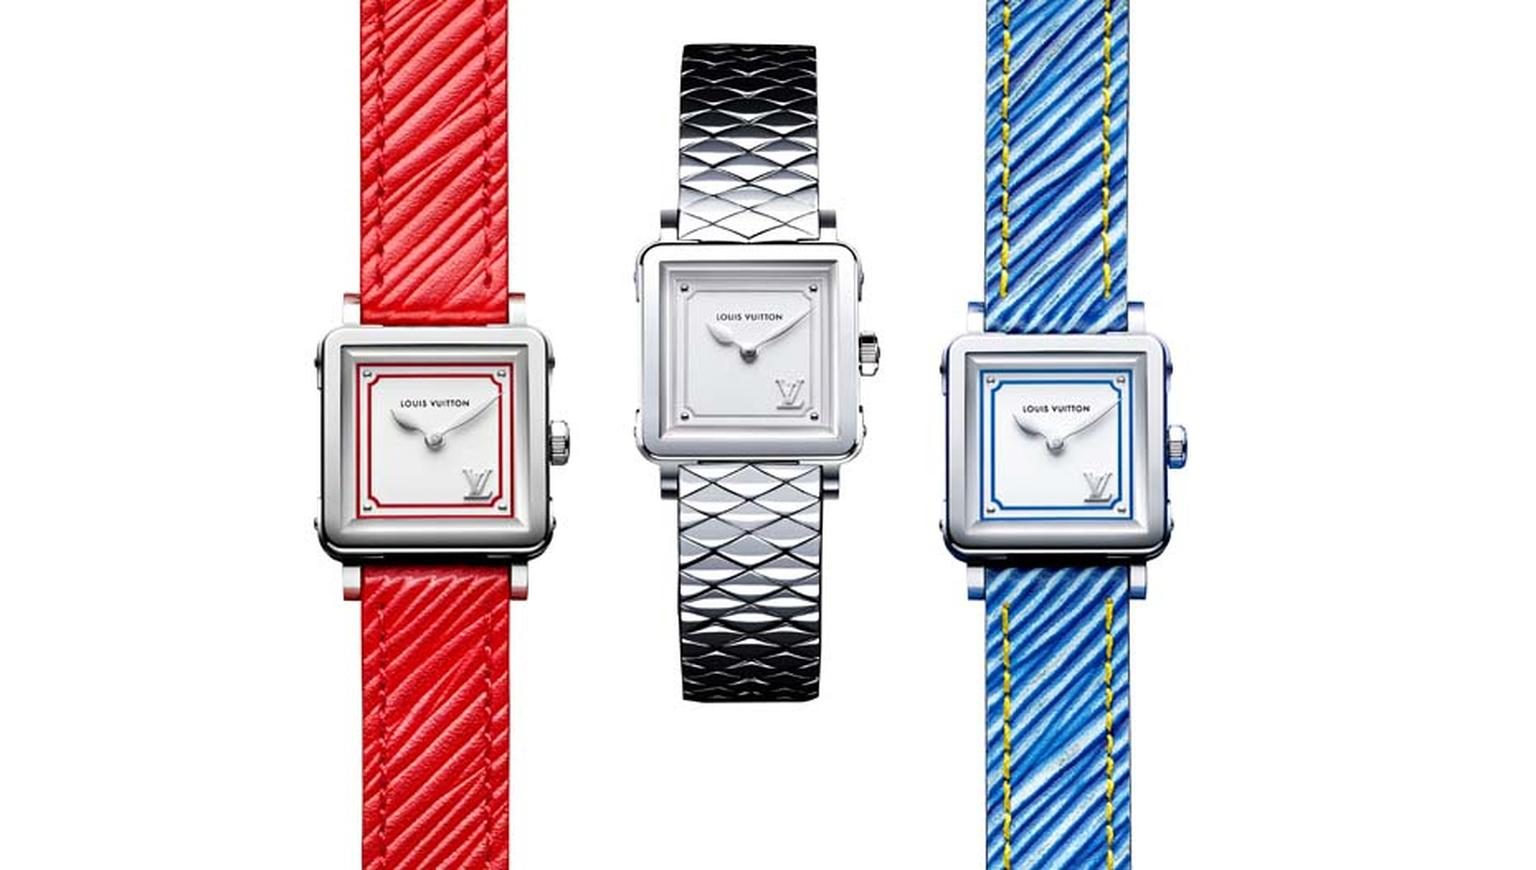 Louis Vuitton watches confirms its commitment to bringing the excitement of the catwalk to the wrist, by launching its boldest collection of ladies' watches to date.